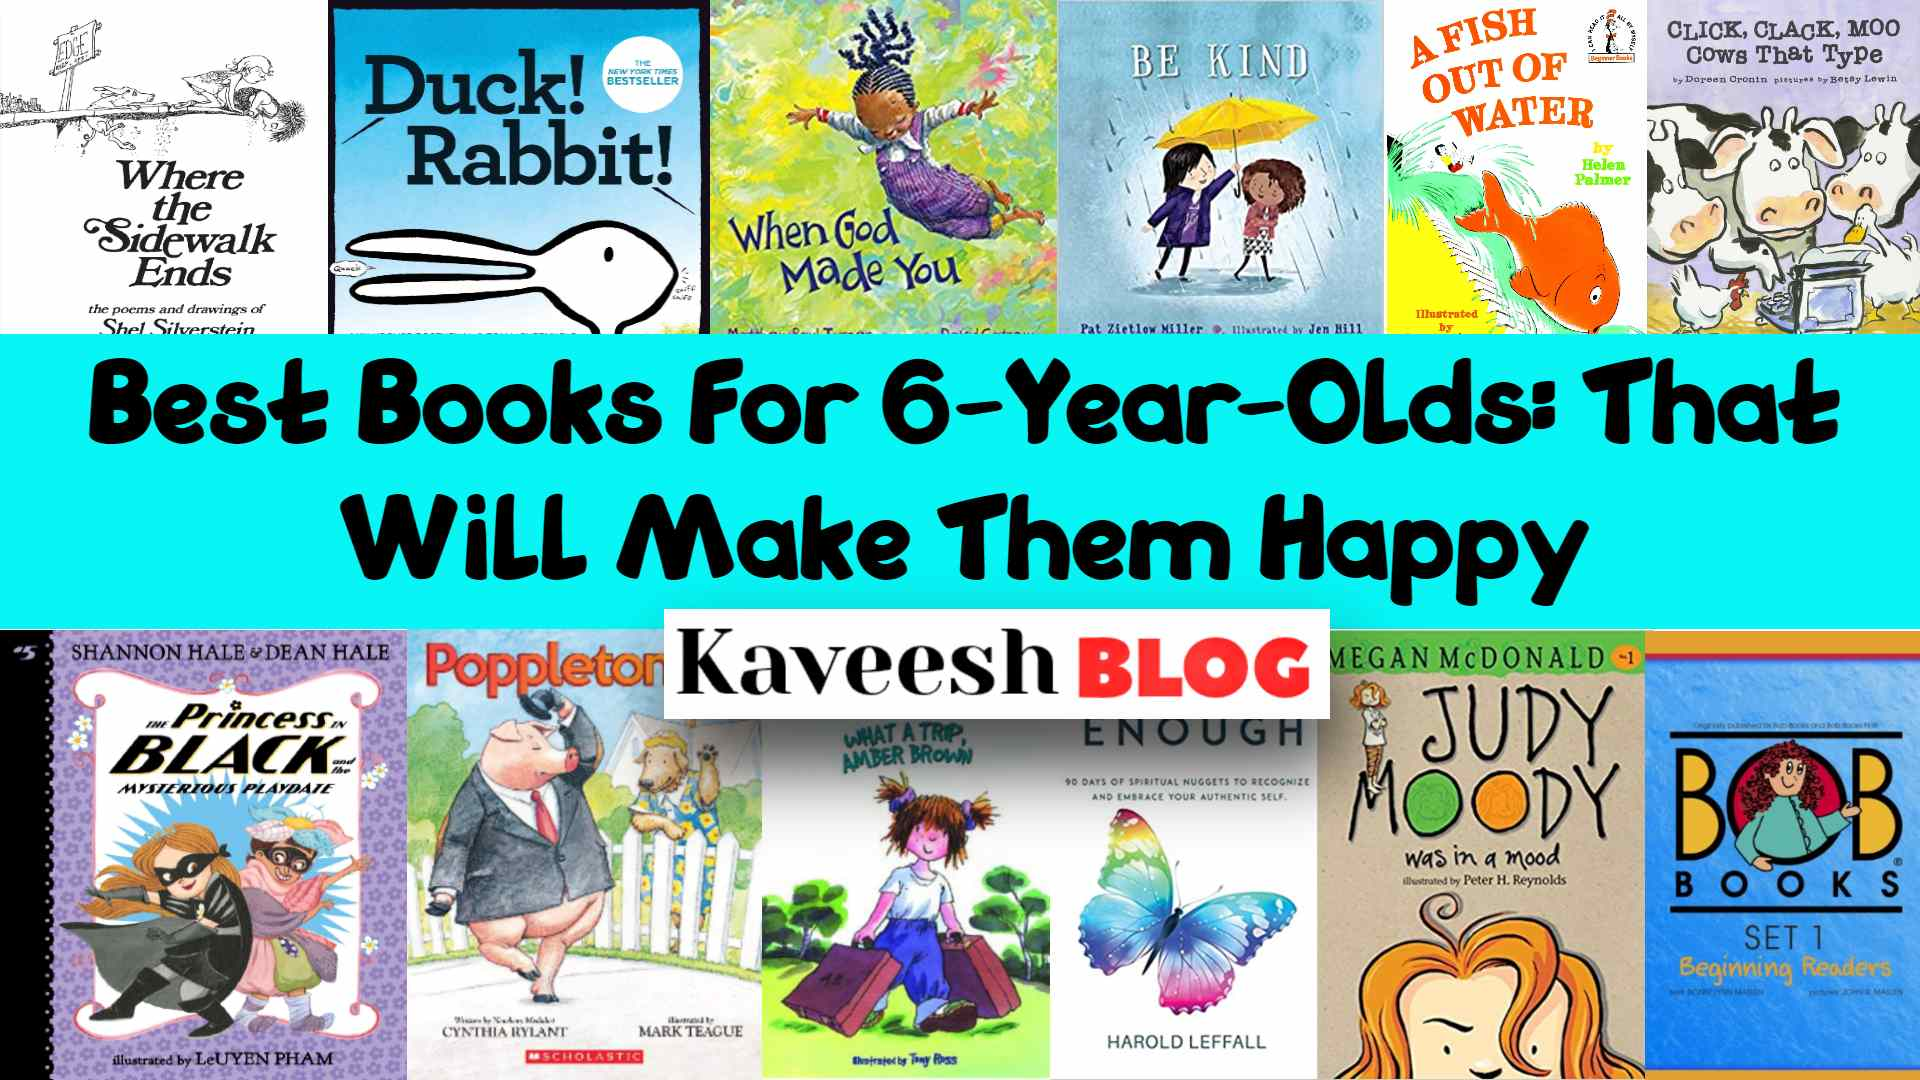 Best Books For 6-Year-Olds_